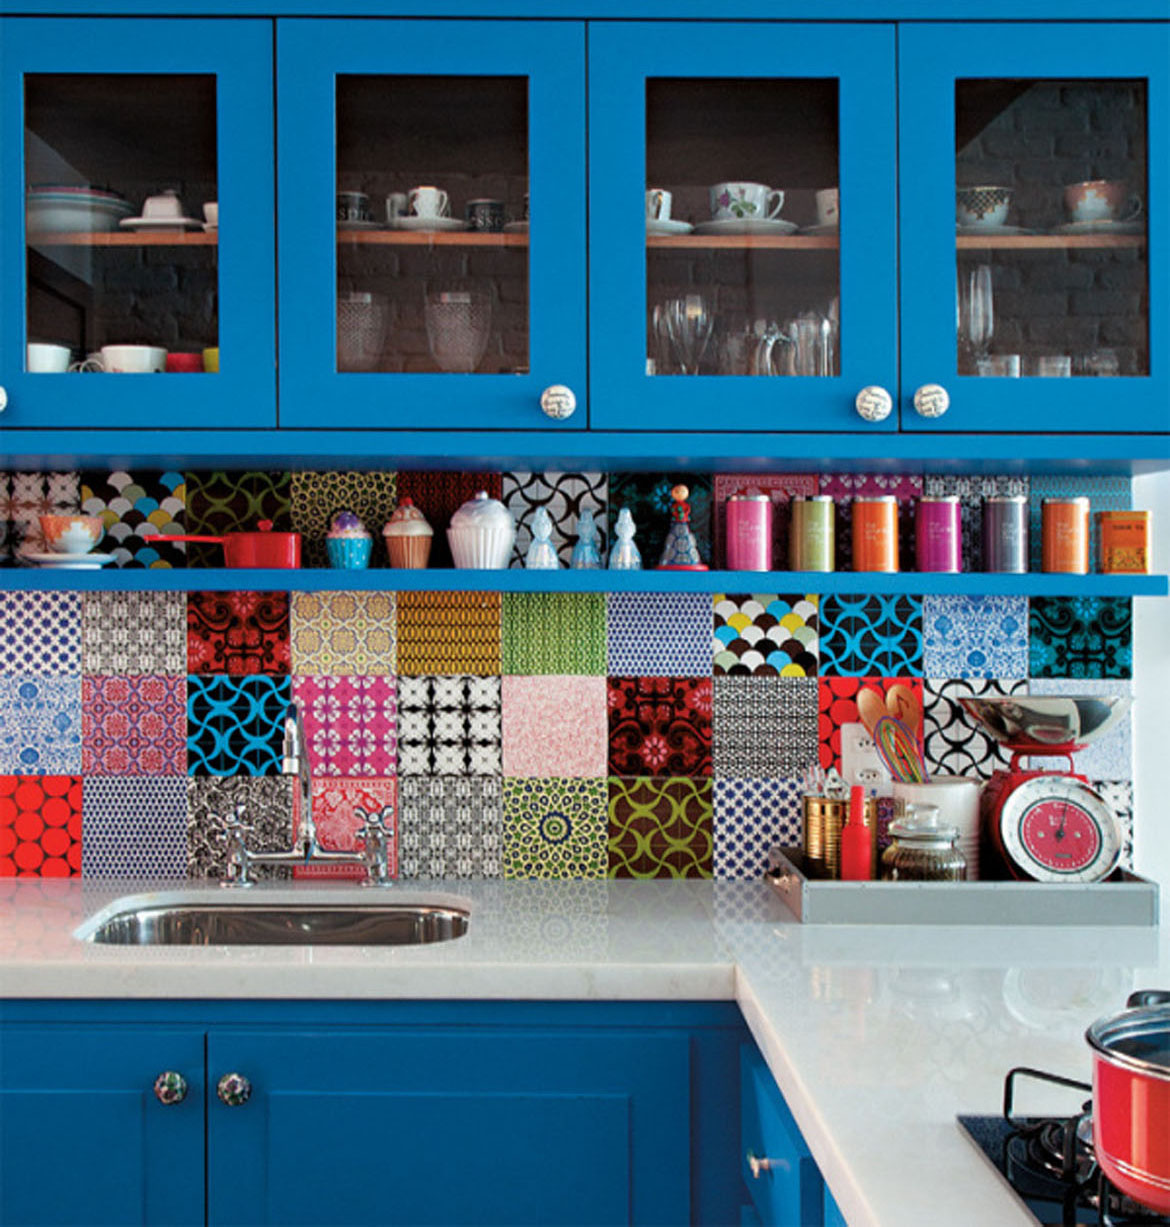 Tile backsplash designs